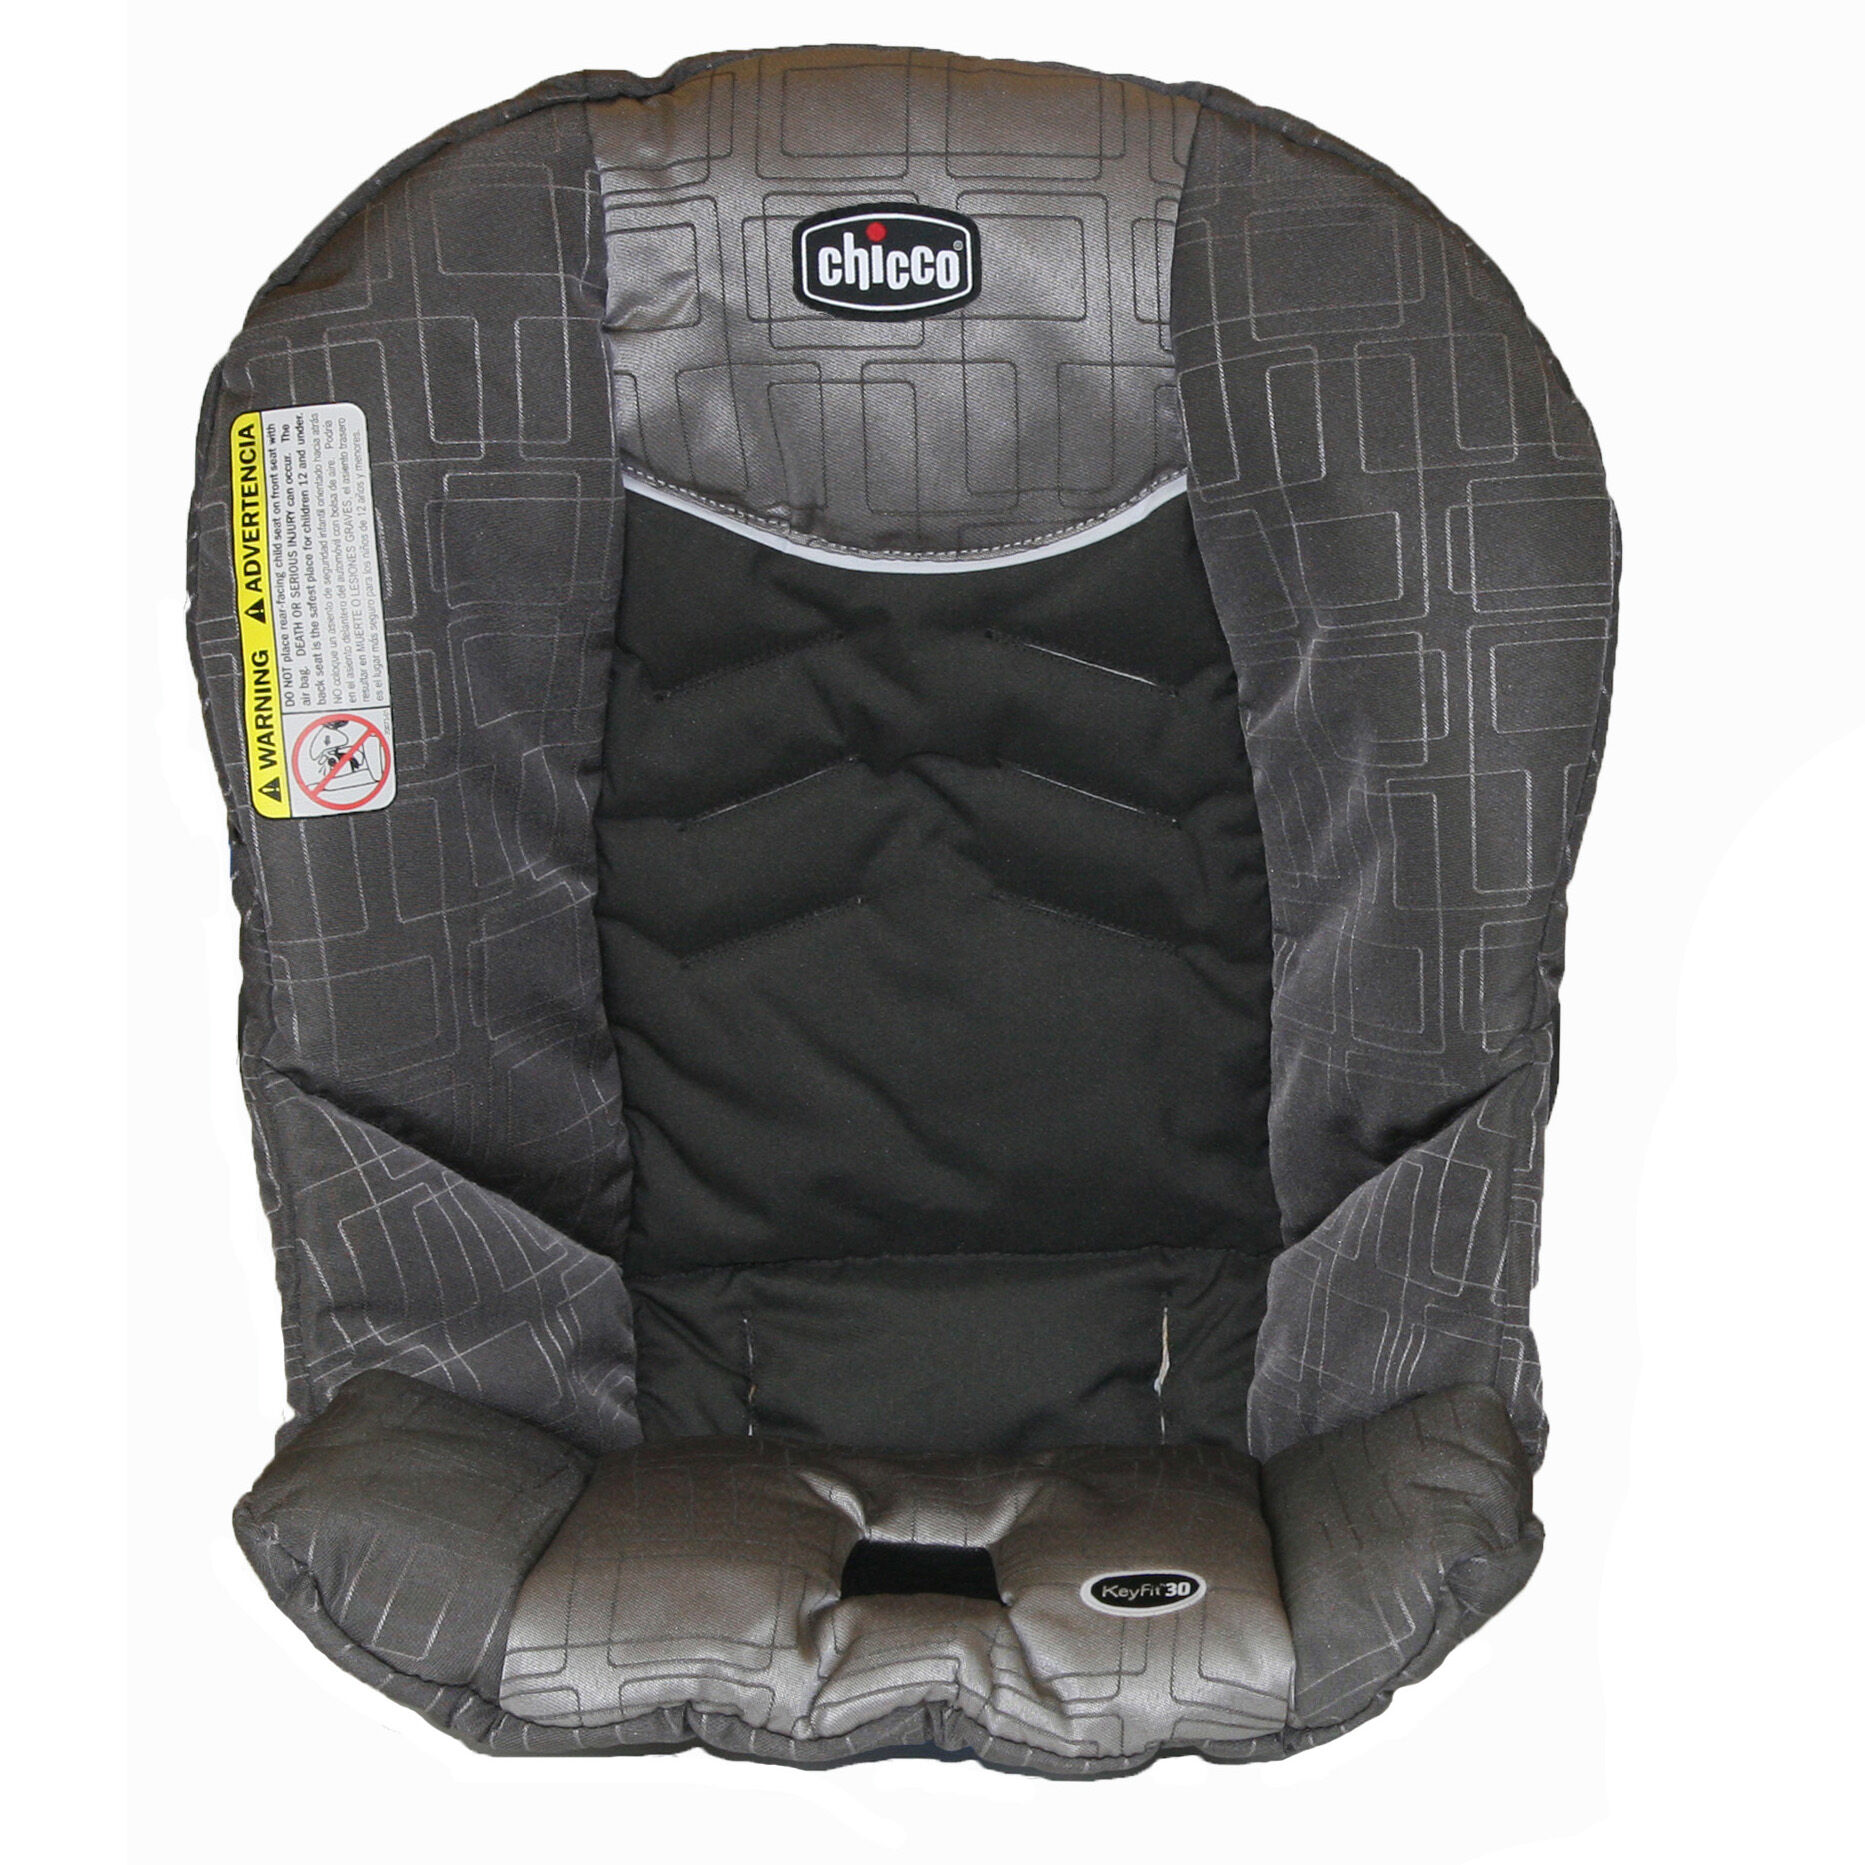 ... Replacement seat cover for the Chicco KeyFit 30 Infant Car Seat; Replacement canopy ...  sc 1 st  Chicco & Keyfit 30 Seat Cover Canopy and Pads